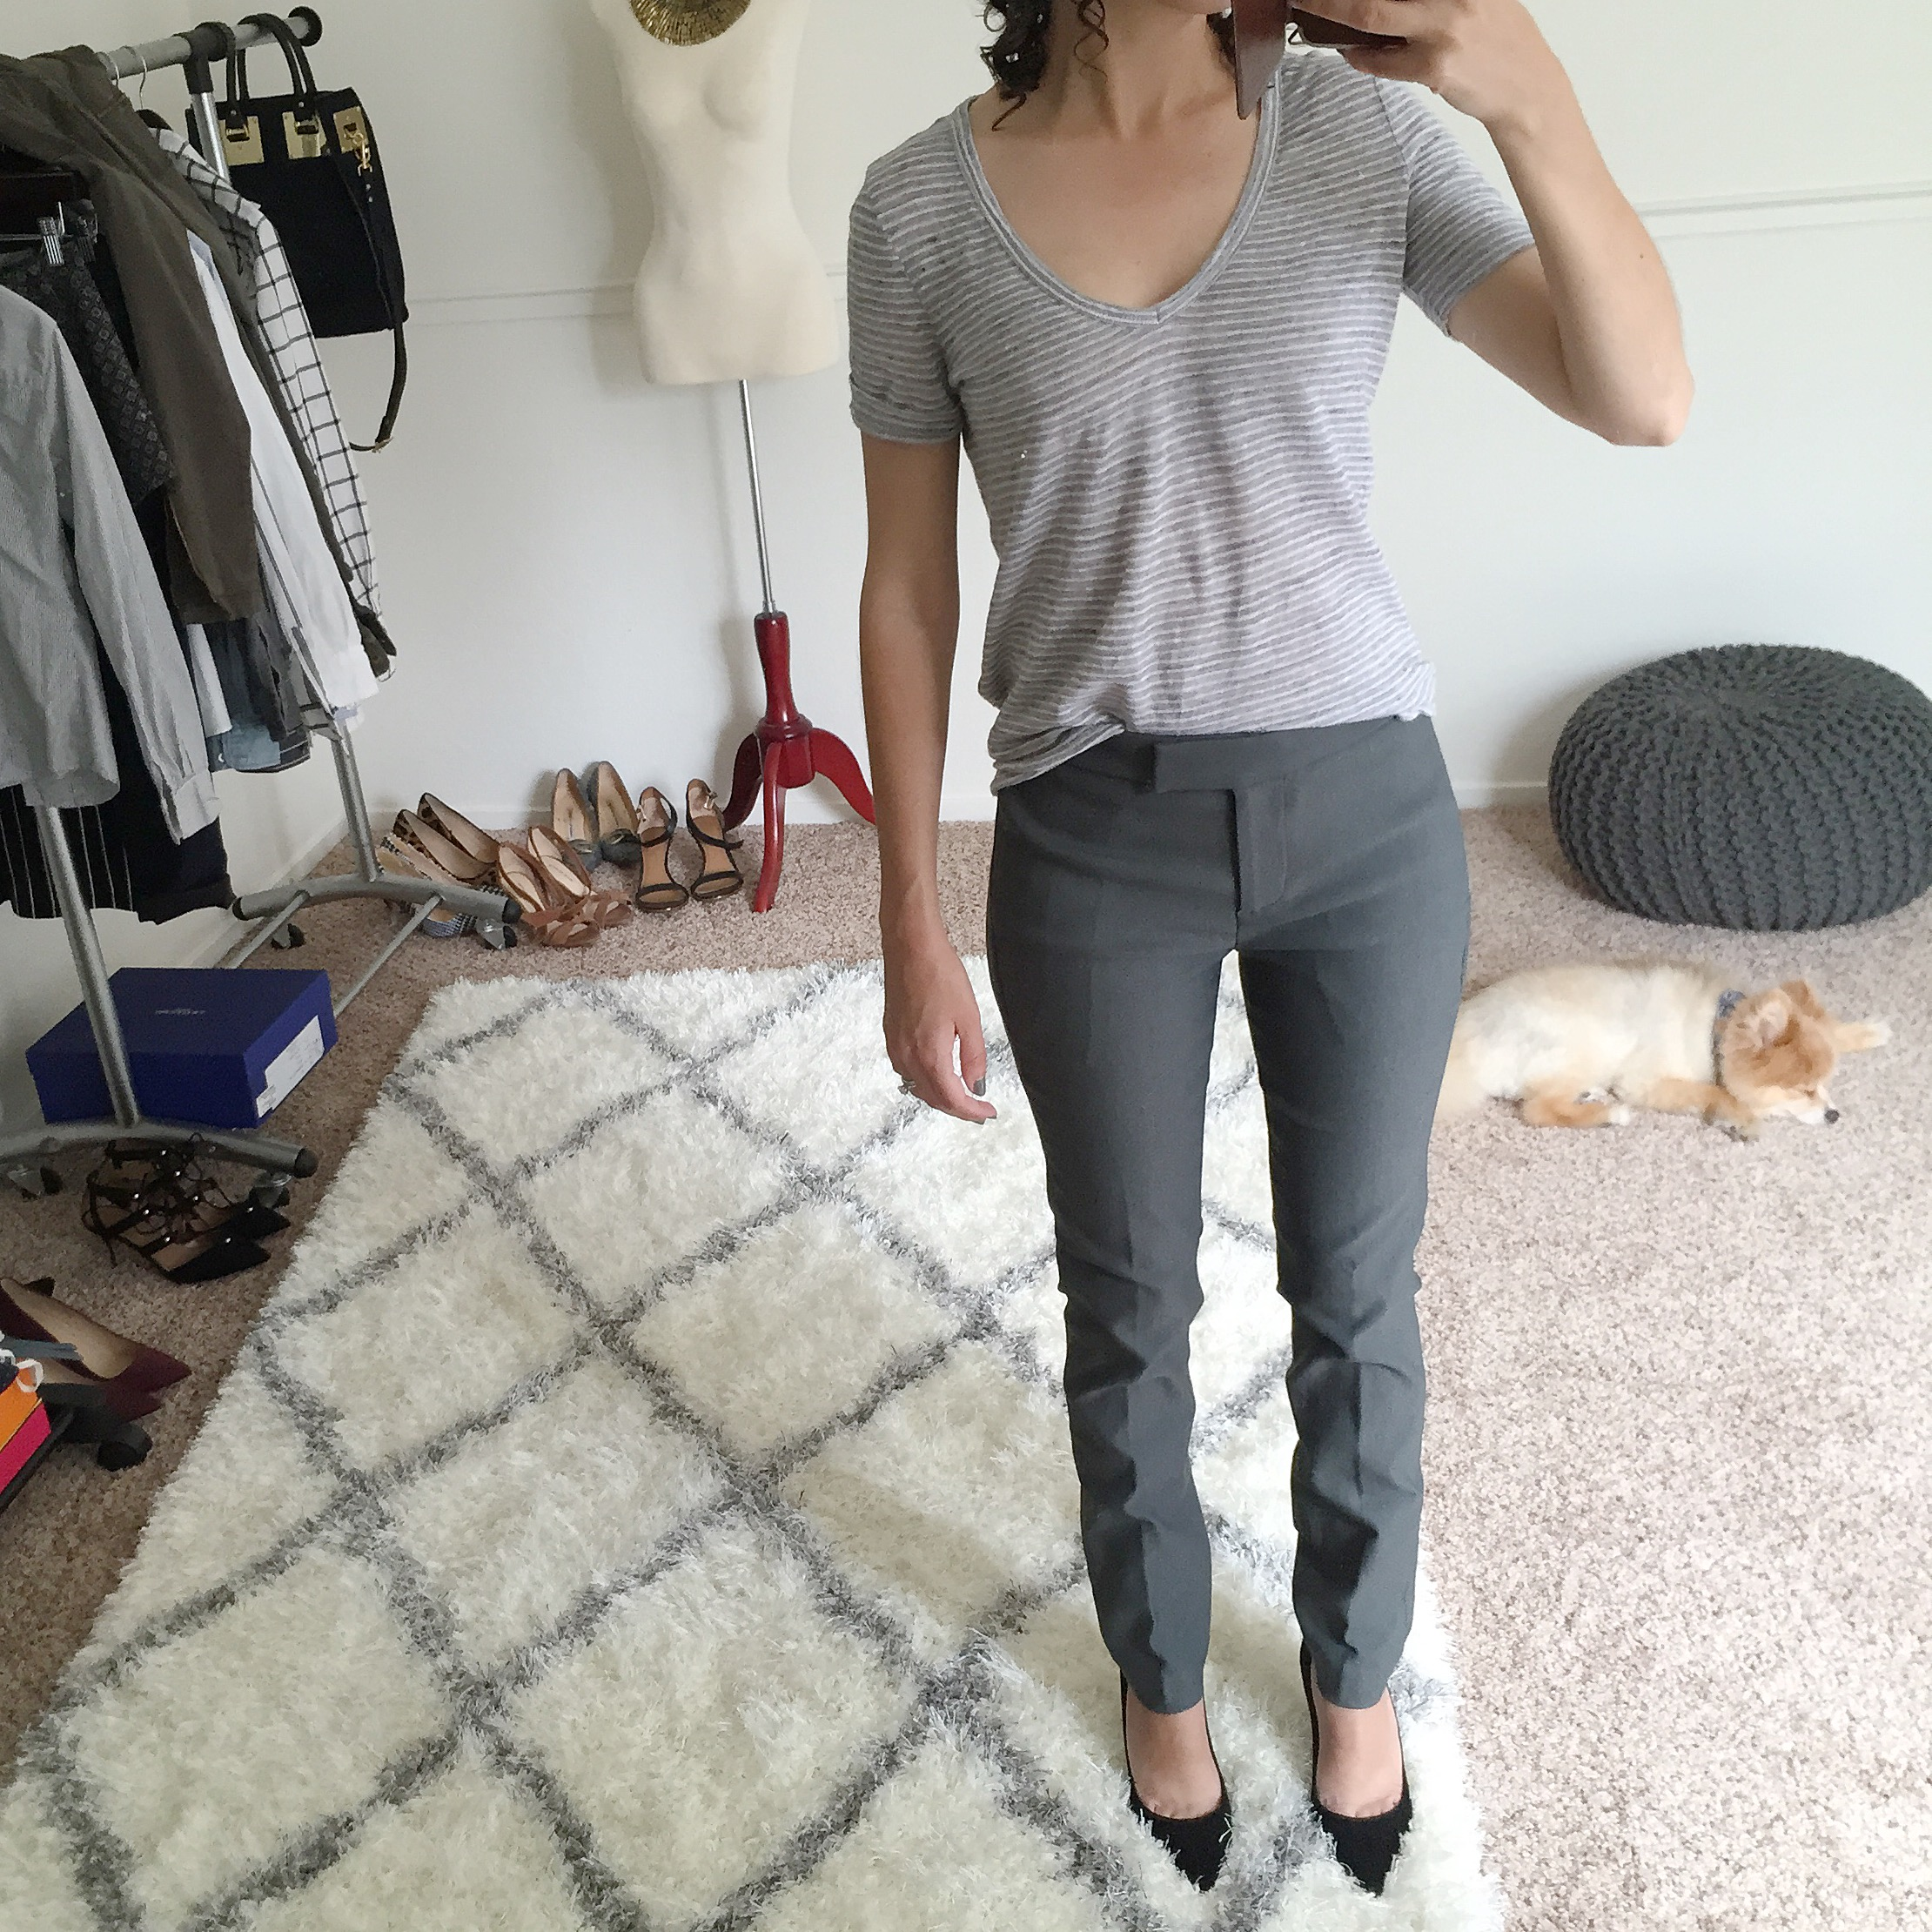 J.Crew Petite Ryder Pant Fit Review